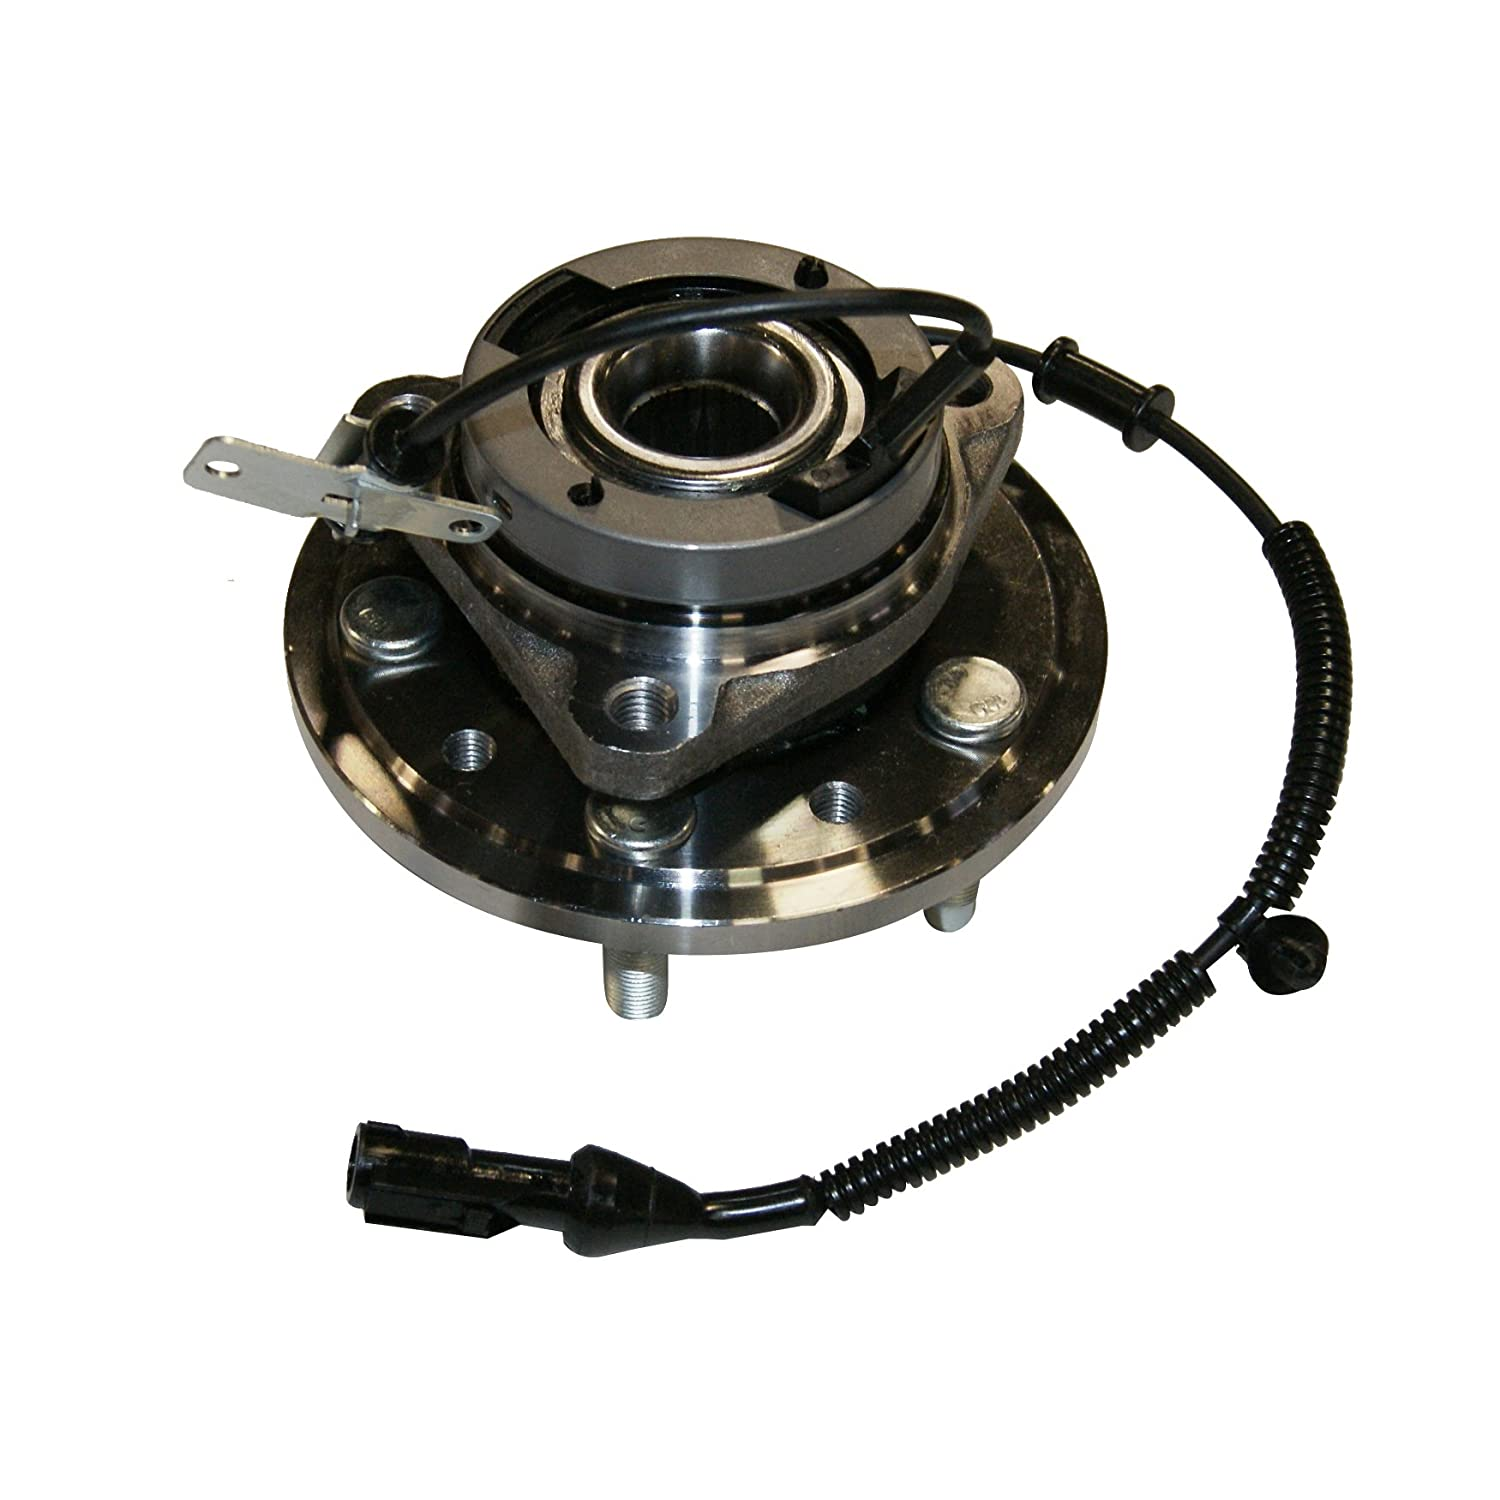 gmb-725-0329-wheel-bearing-hub-assembly